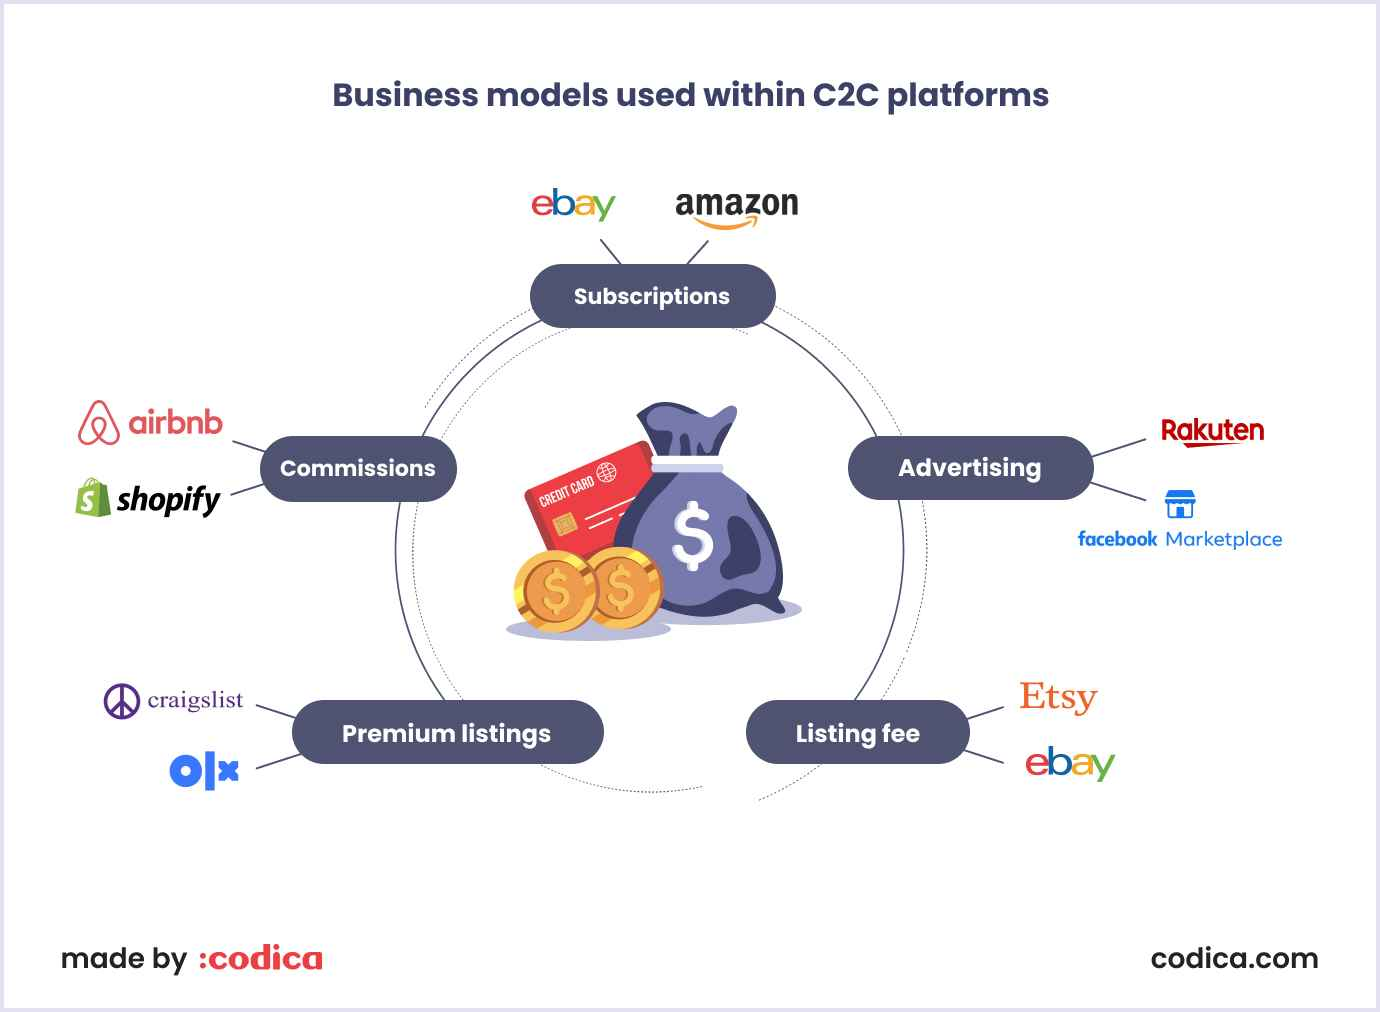 Business models widely used by C2C platforms